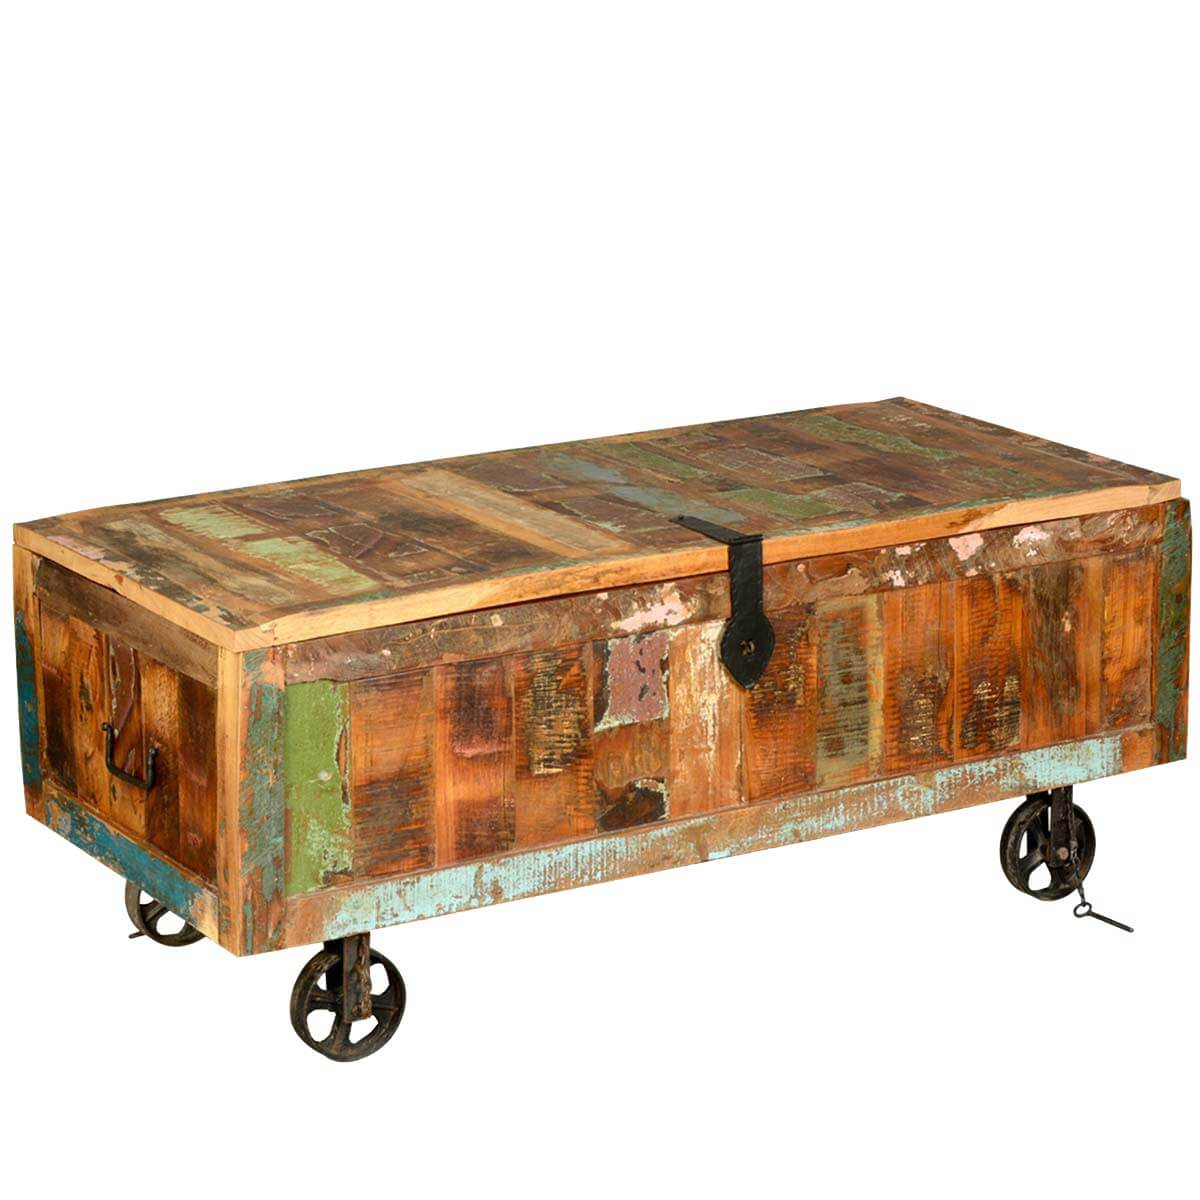 Appalachian Rustic Old Wood Coffee Table Chest on Wheels